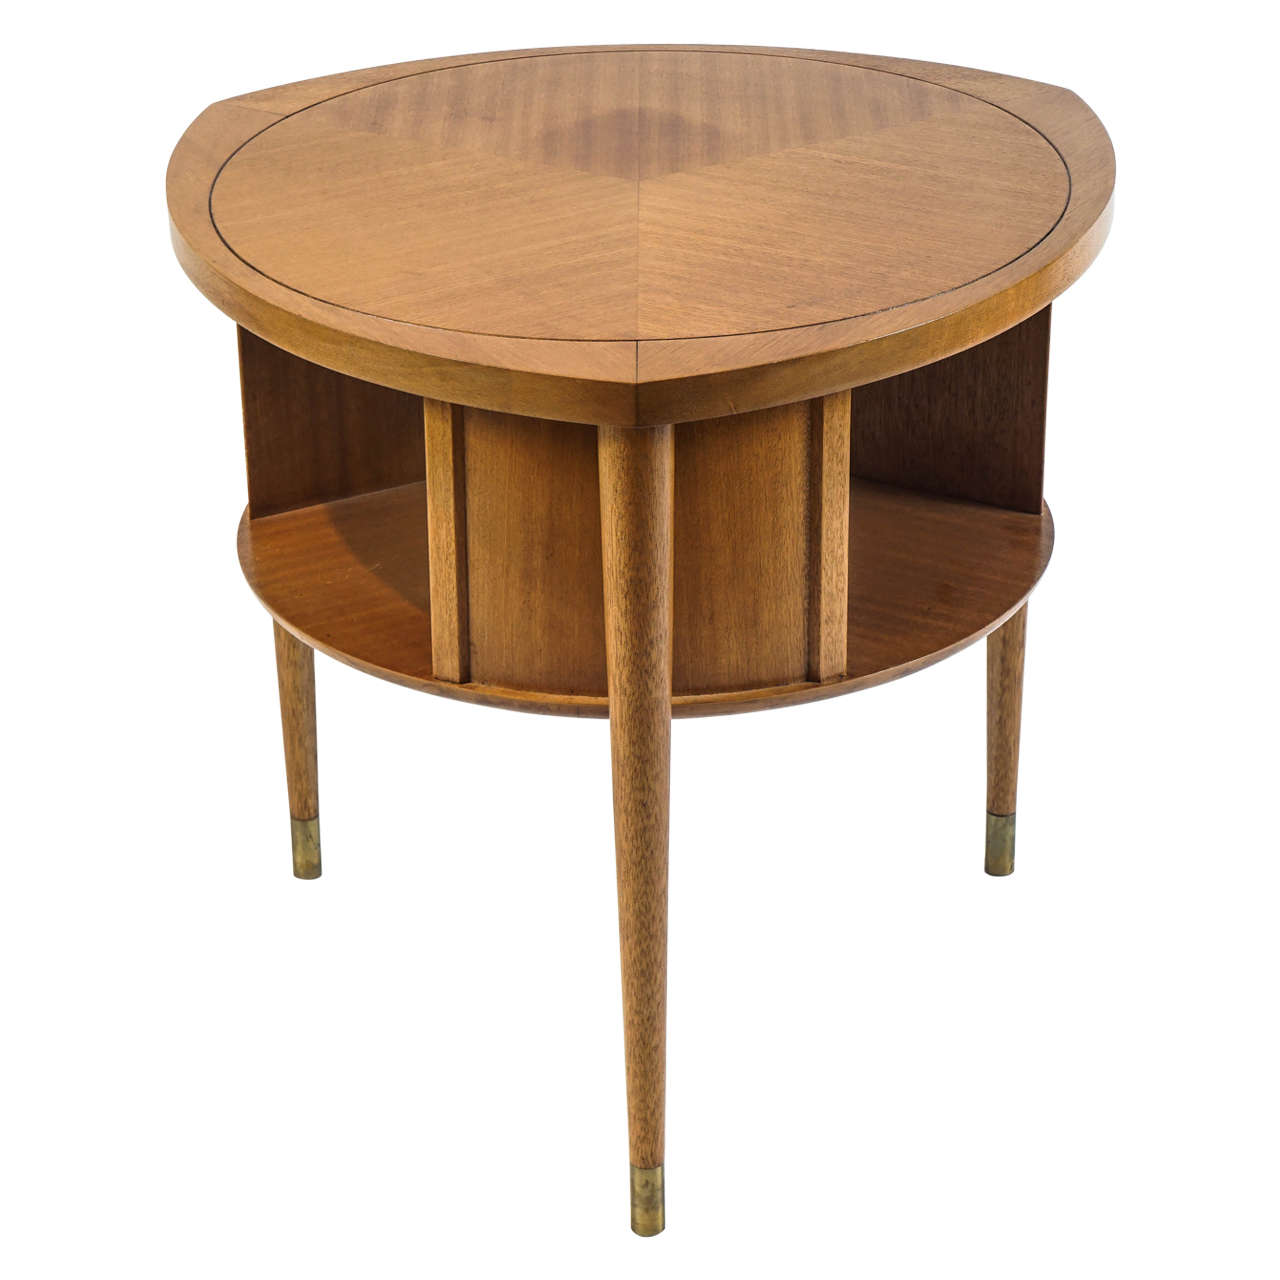 John keal for brown saltman table with rotating shelf at for Rotating dining table